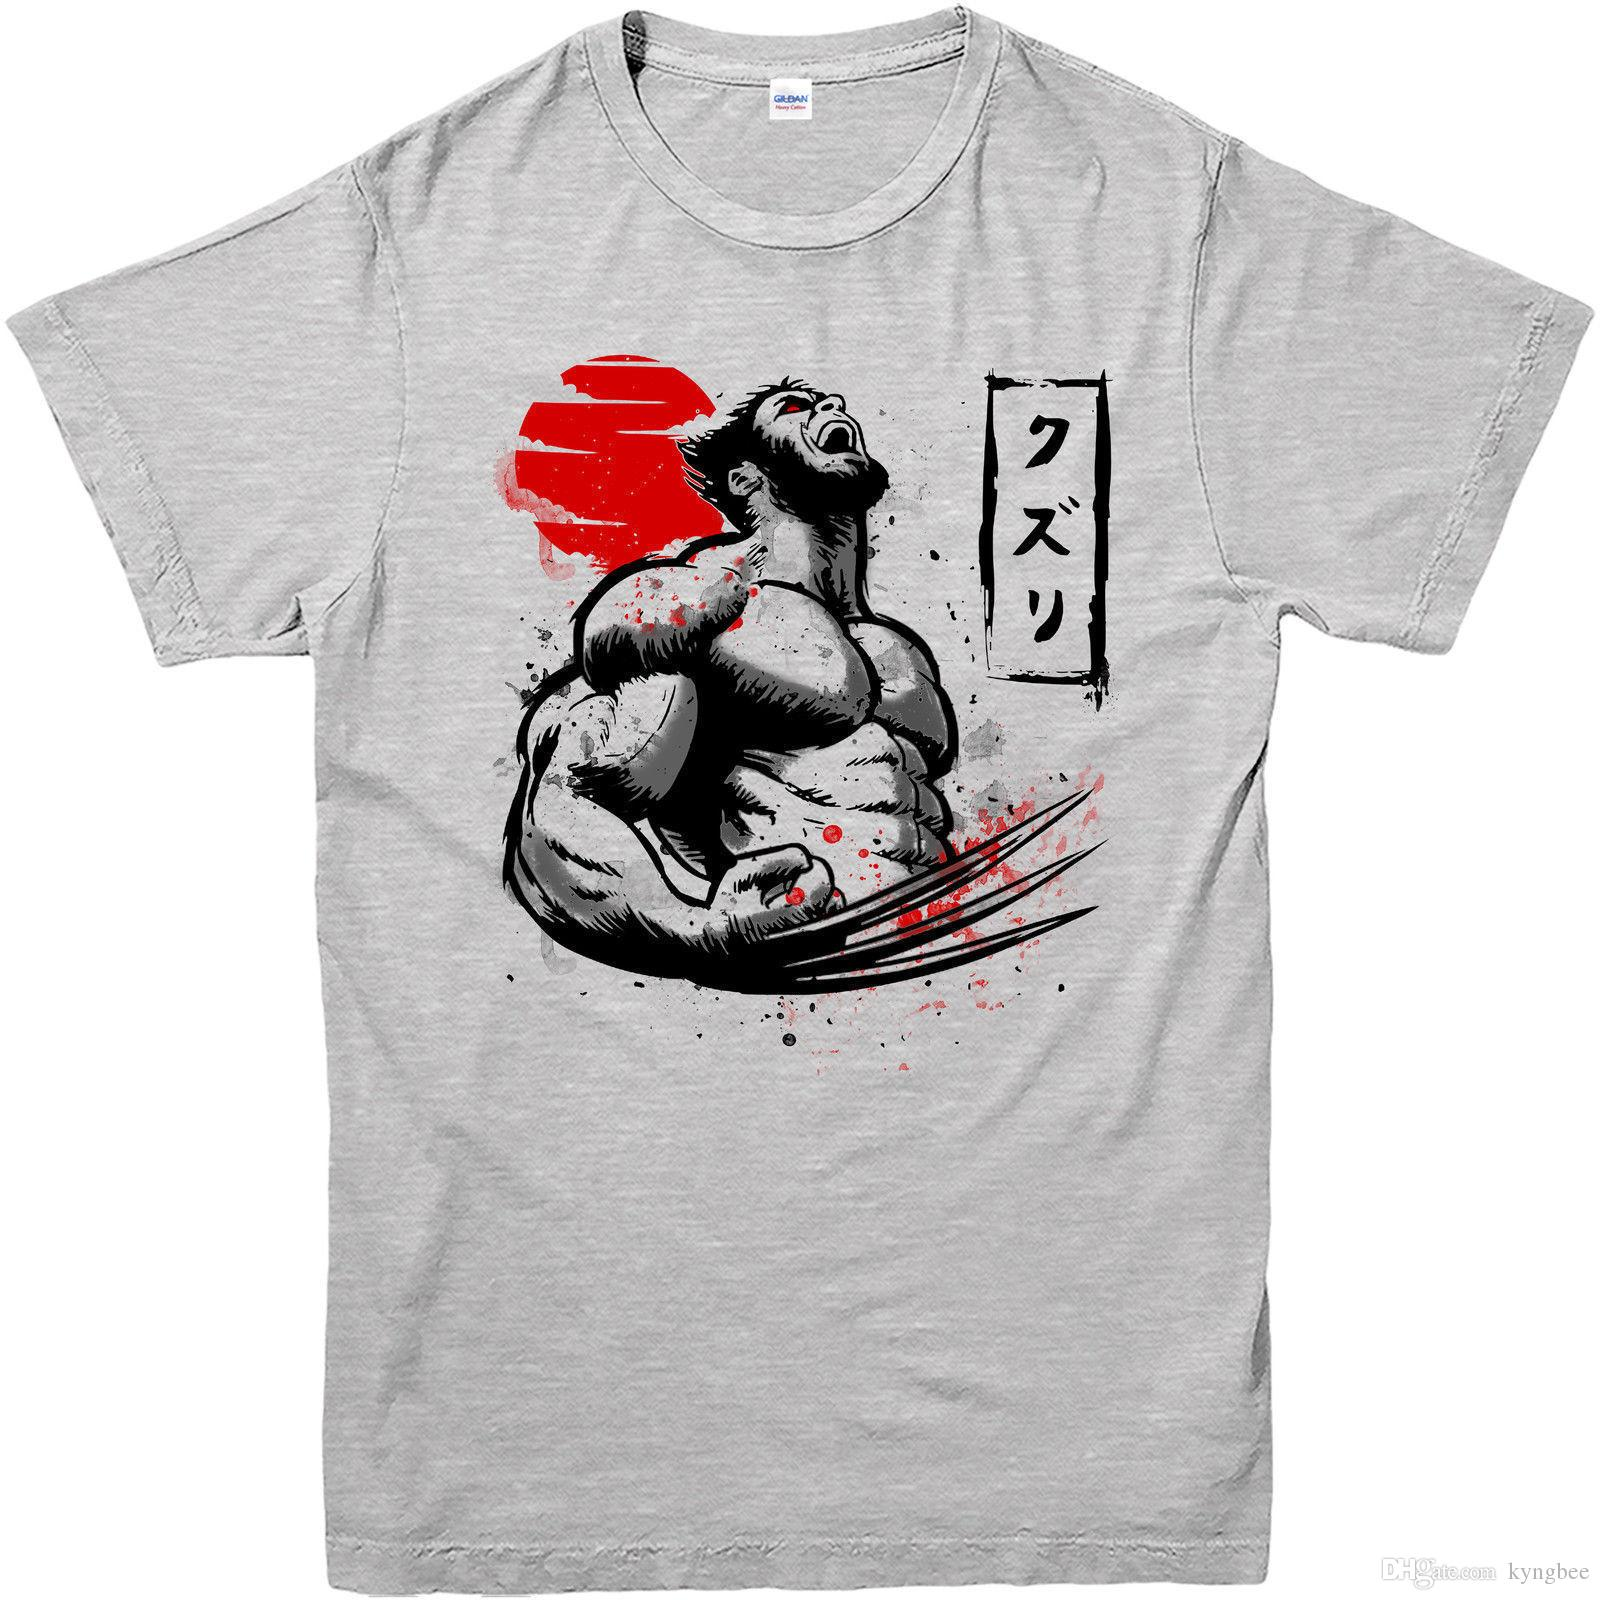 4eb6e8cb72fc X Men T Shirt Wolverine Japanese Marvel Comics Gift Unisex Adult & Kids Tee  Top T Shirt Slogan Daily T Shirts From Kyngbee, $10.72| DHgate.Com